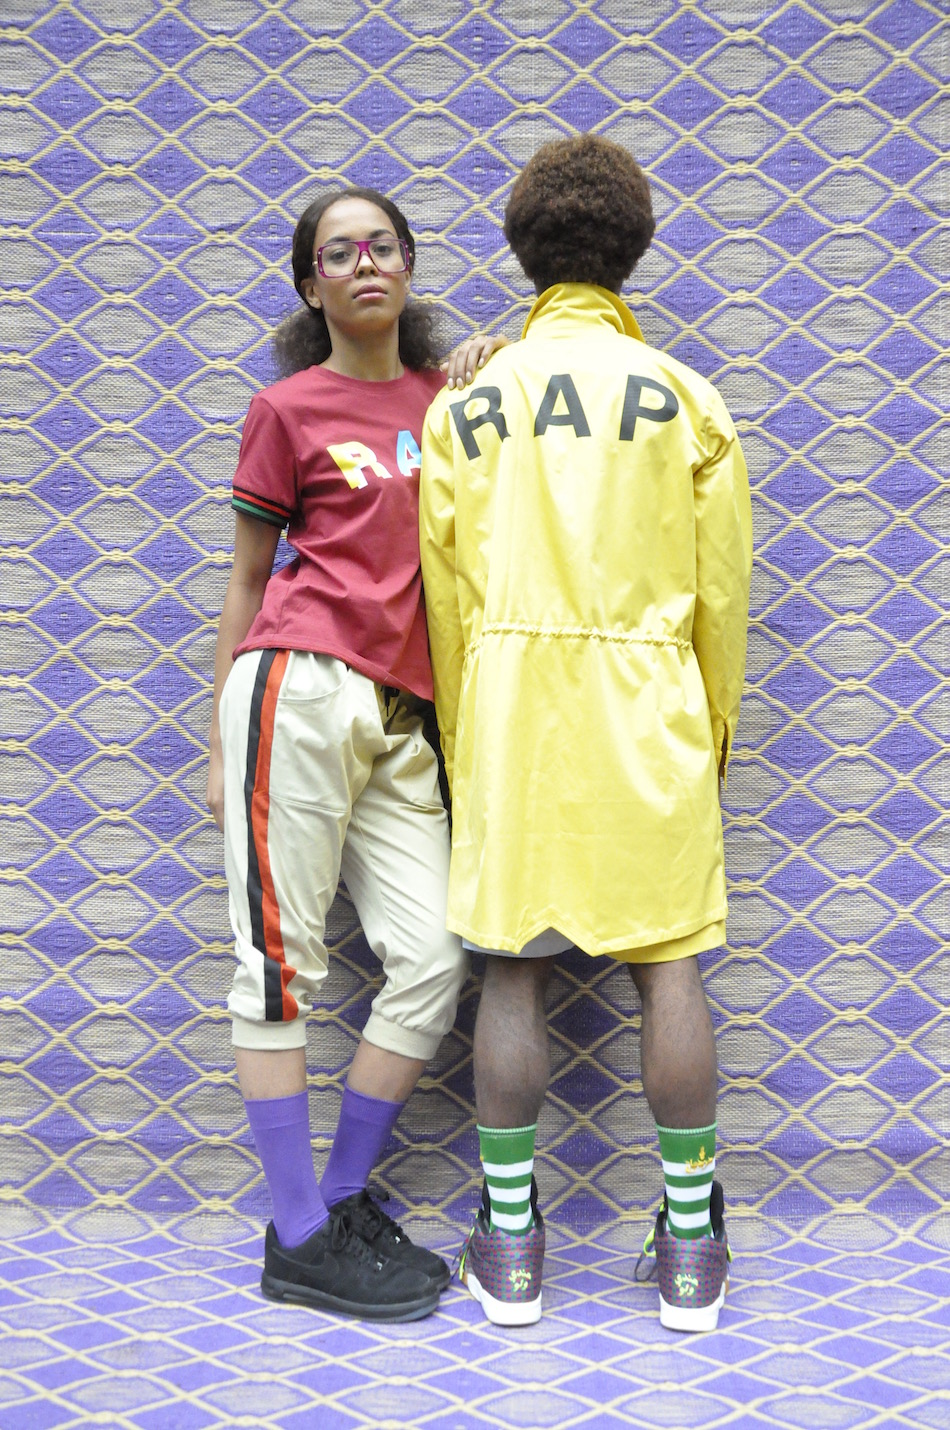 Hassan Hajjaj: R.A.P London